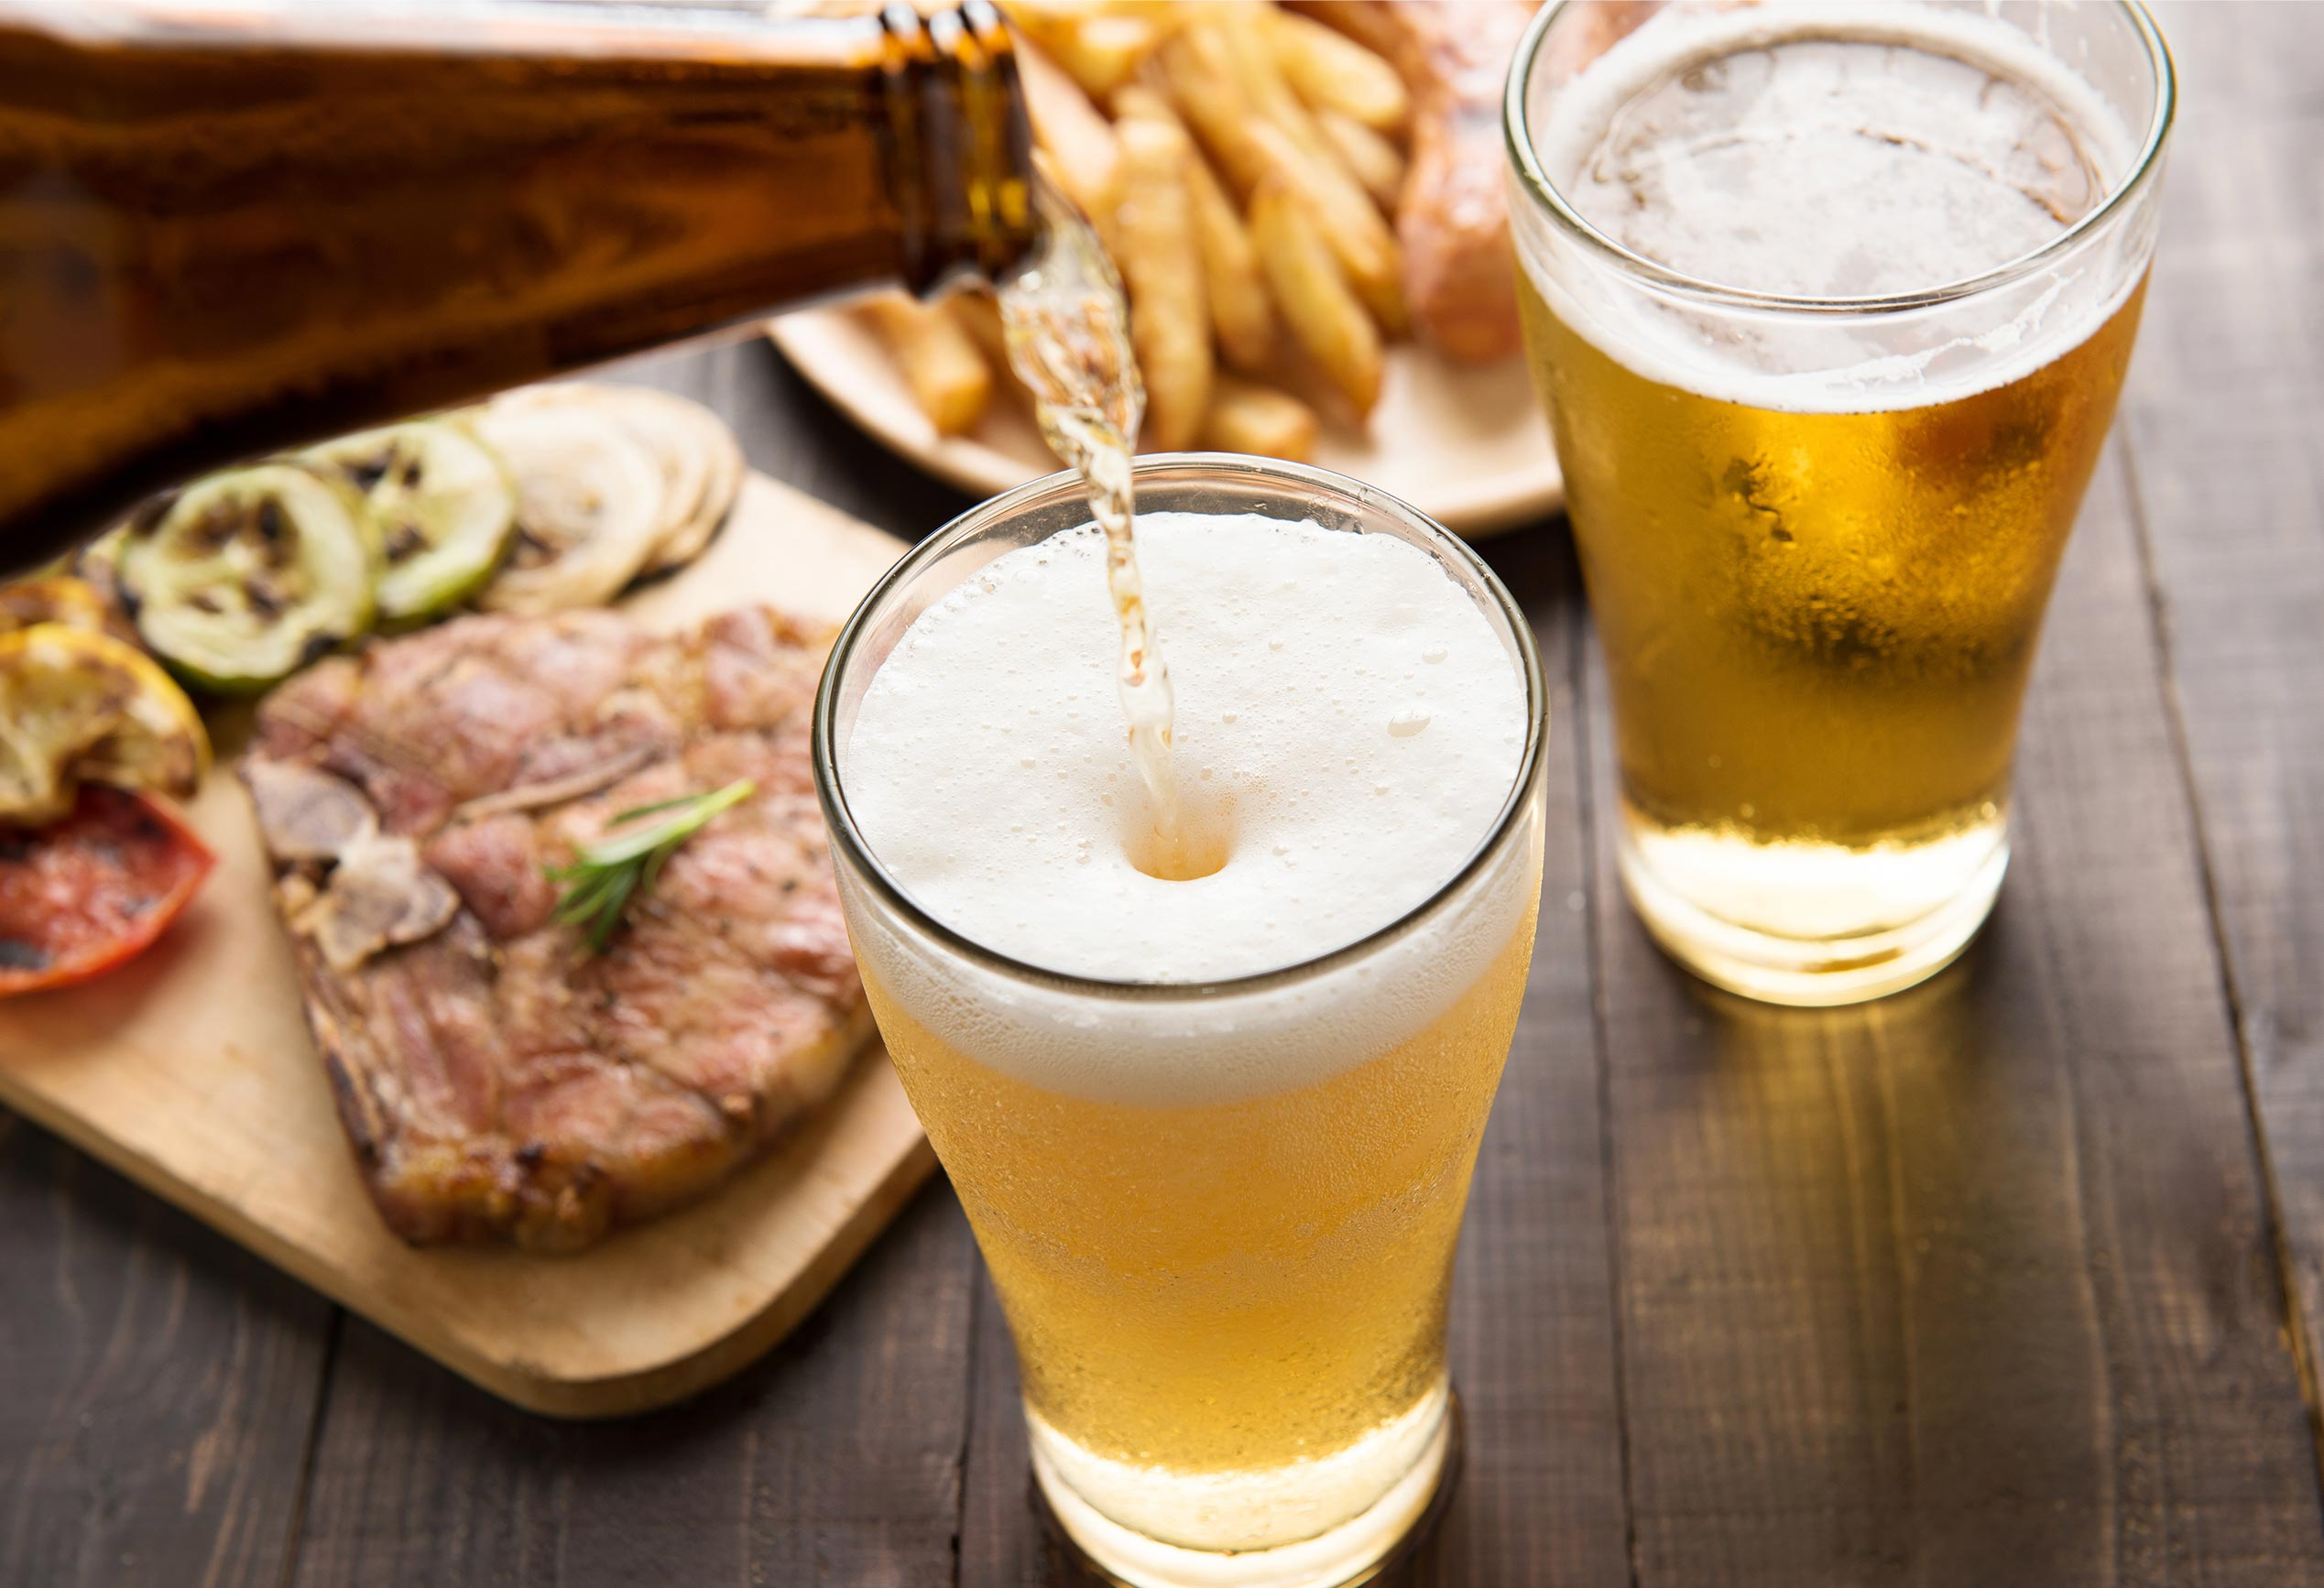 Five Things to Consider When Pairing Beer With Food